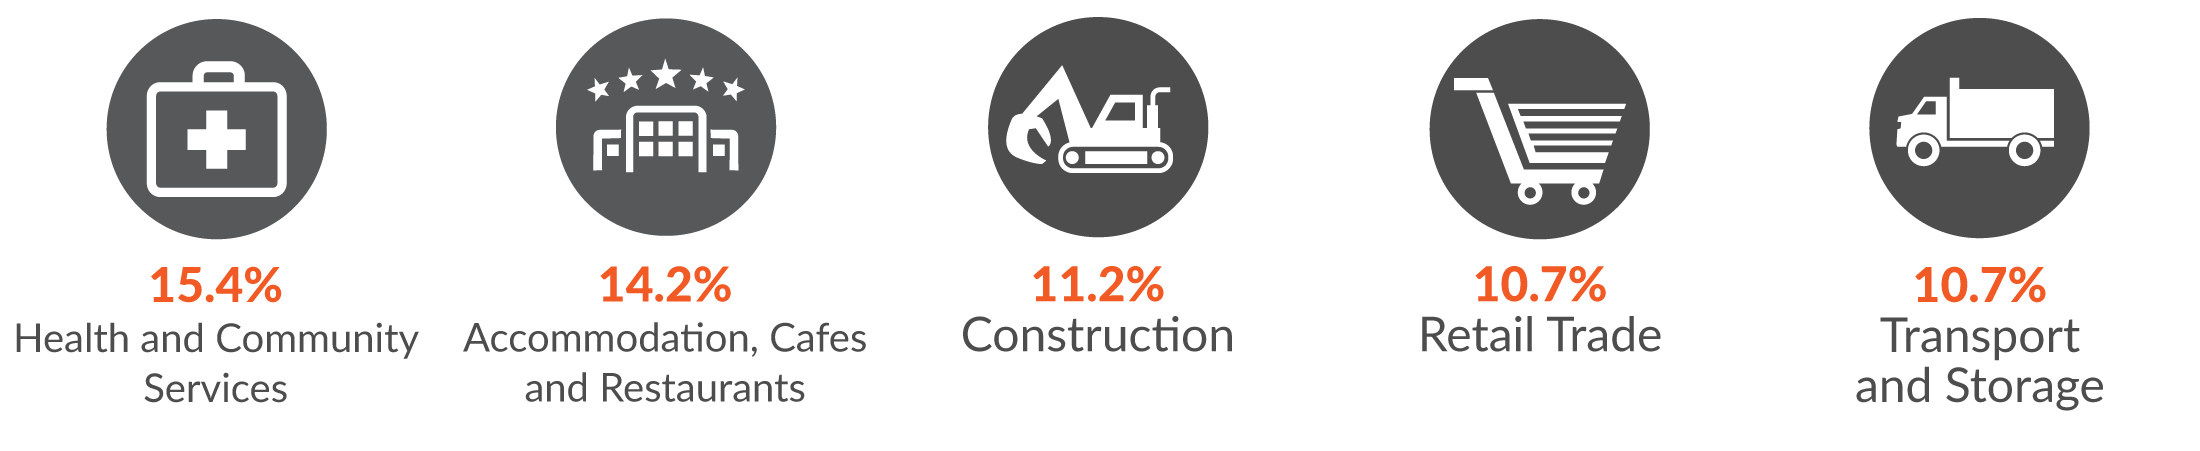 The image is five infographics representative the following: Health and community services, accommodation, cafes and restaurants, construction, retail trade, transport and storage.